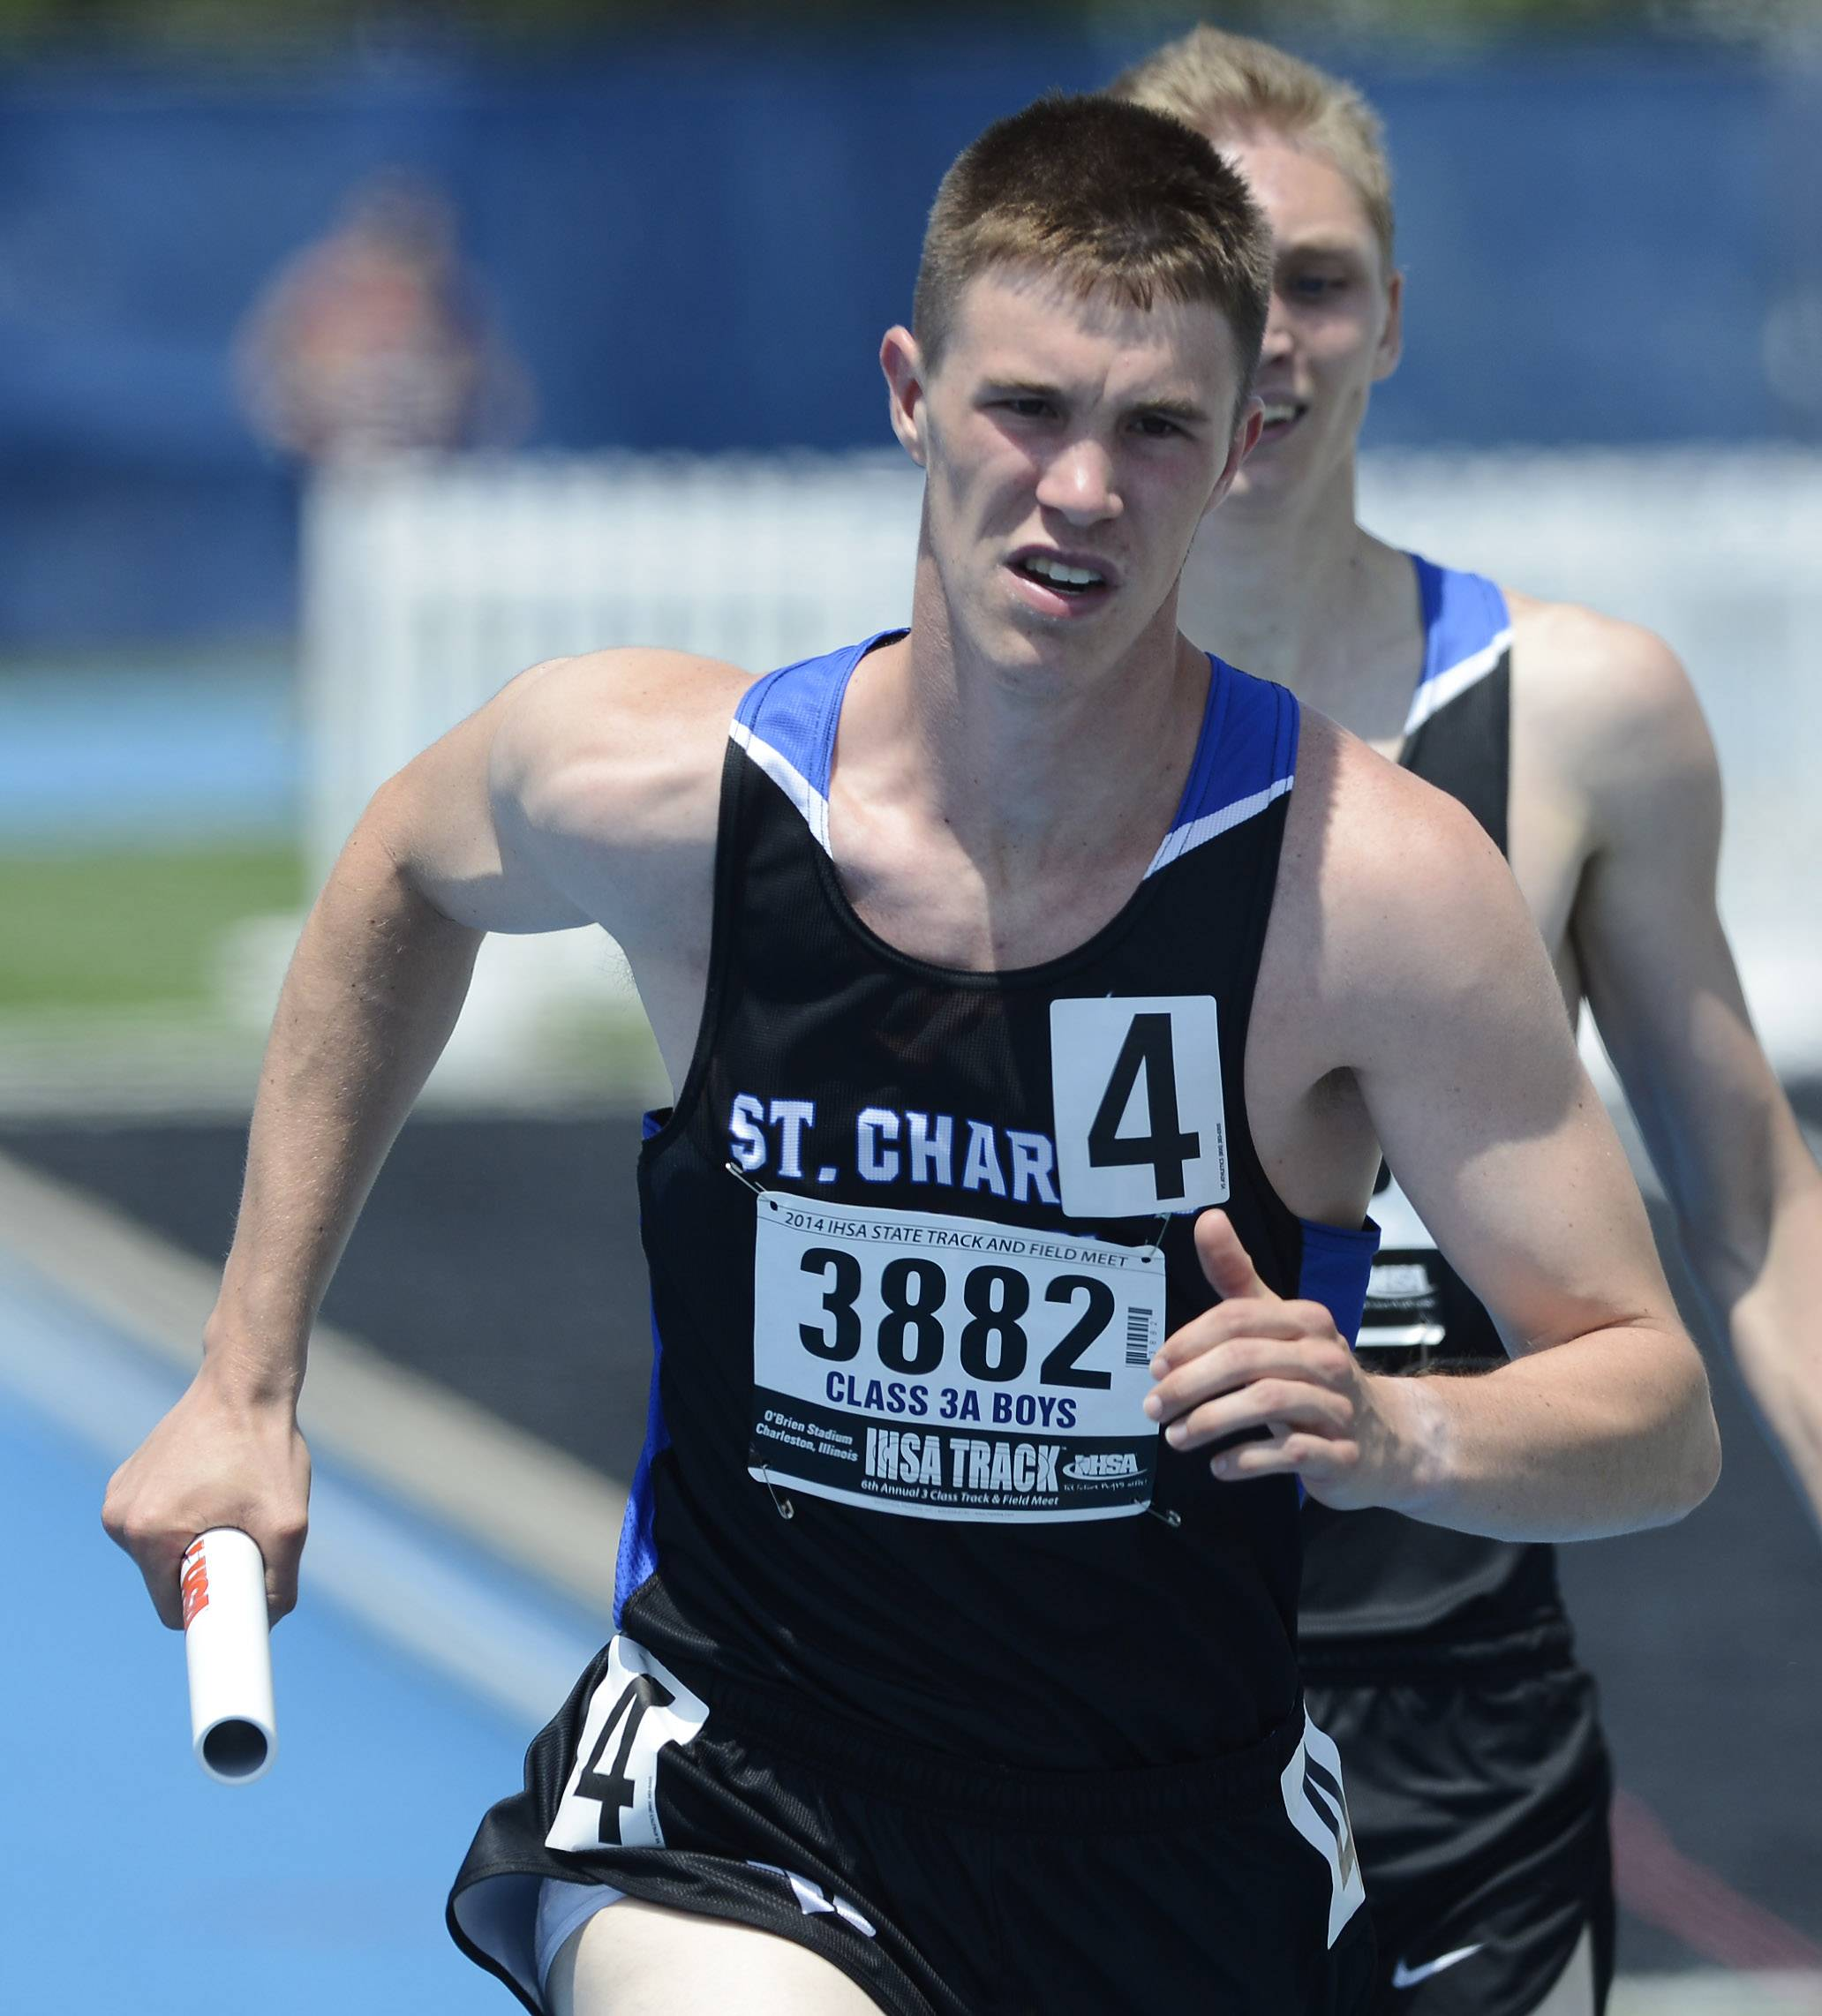 St. Charles North's Nathan Klair carries the baton for his team in the 4x800-meter relay during the Class 3A boys track and field state preliminaries in Charleston on Friday.